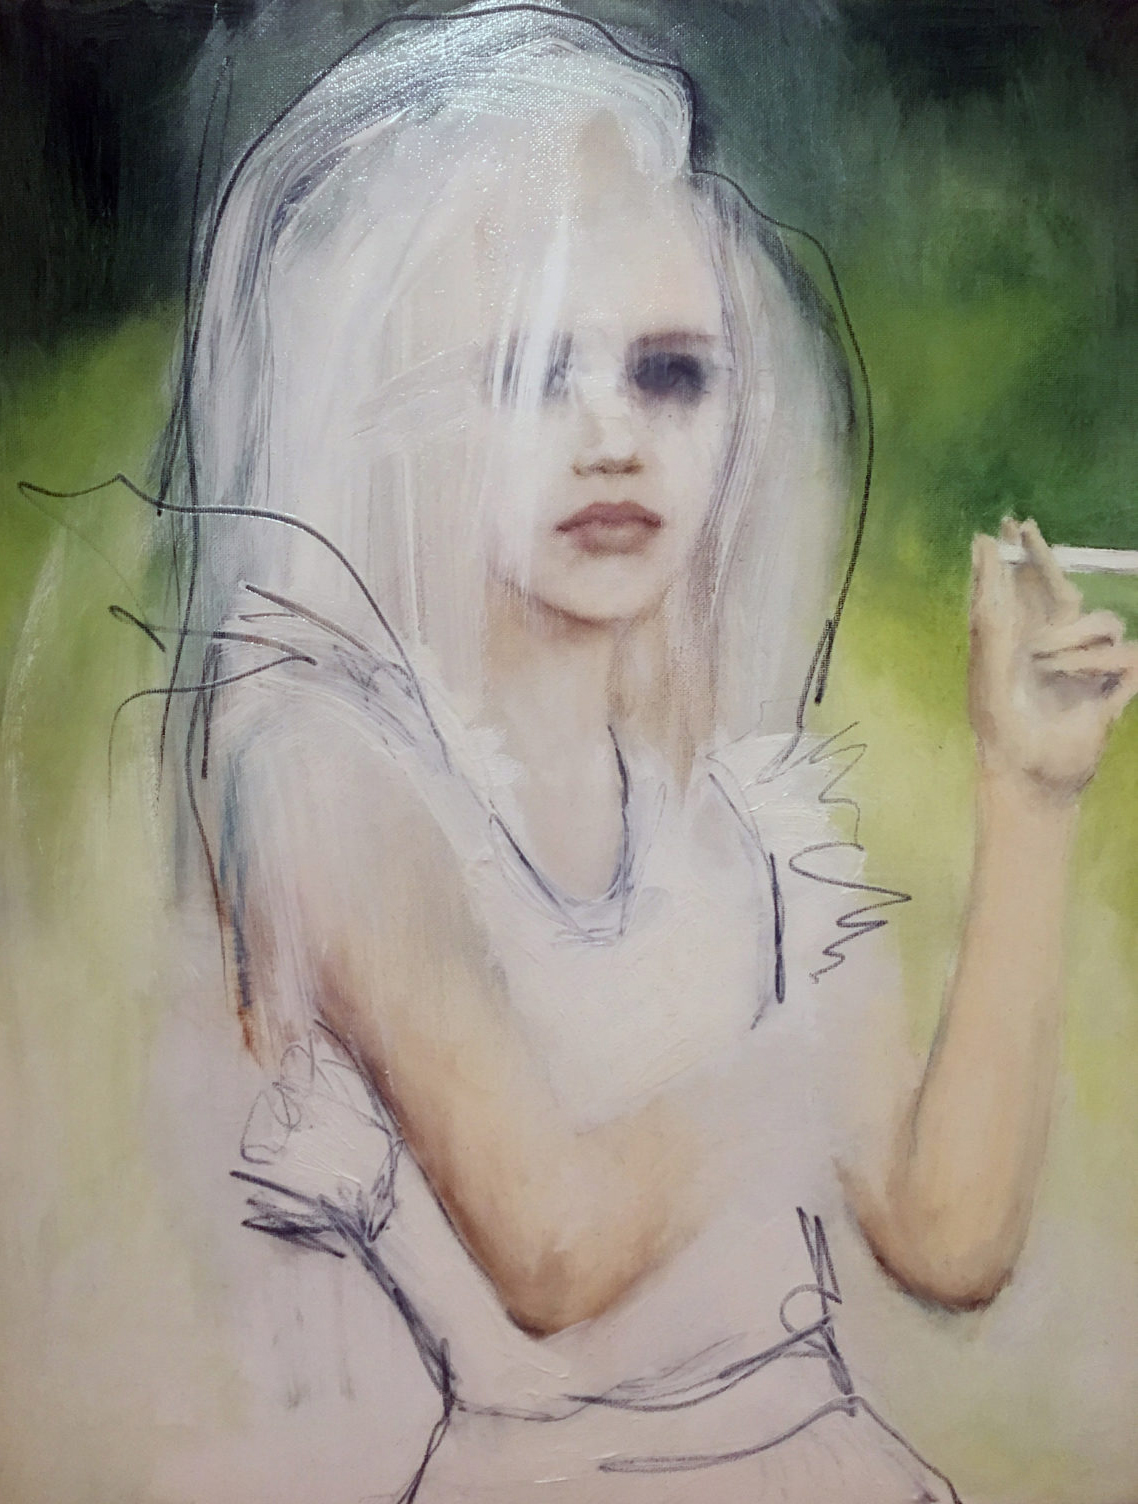 Painting of young girl with candy cigarette